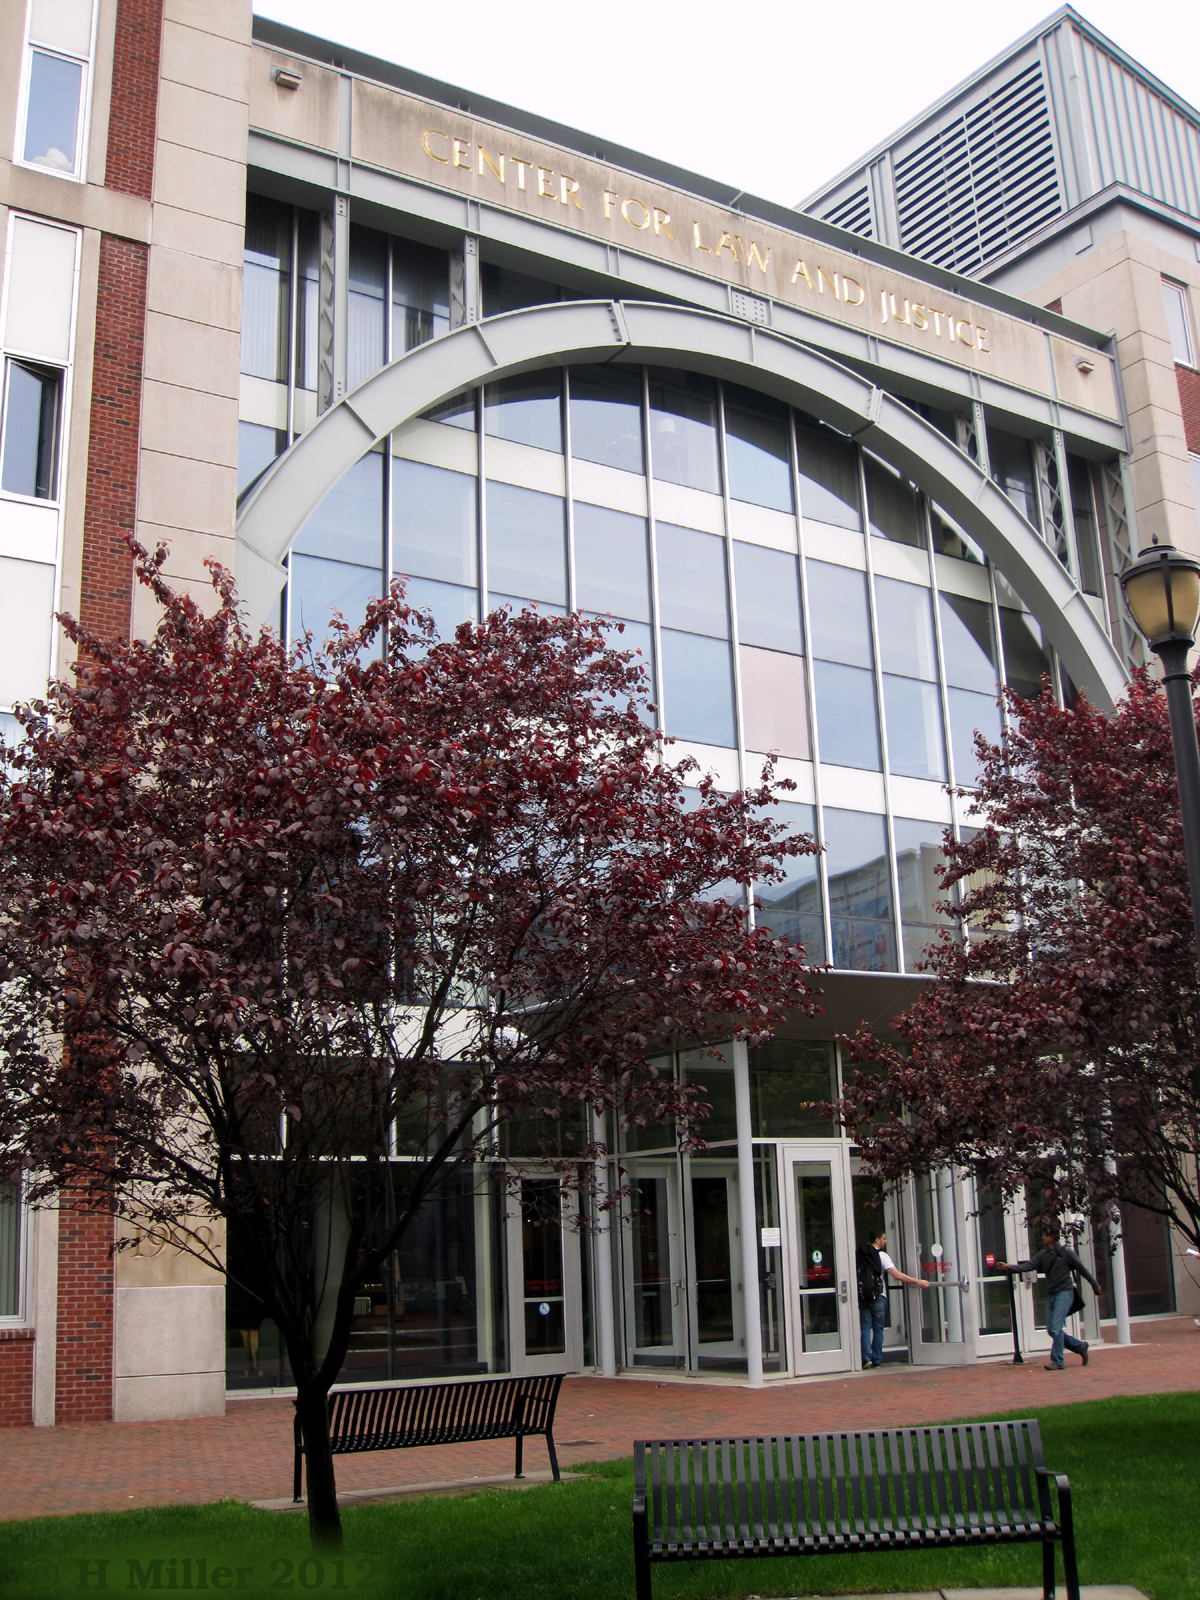 The Center for Law and Justice at the Newark Campus of Rutgers University